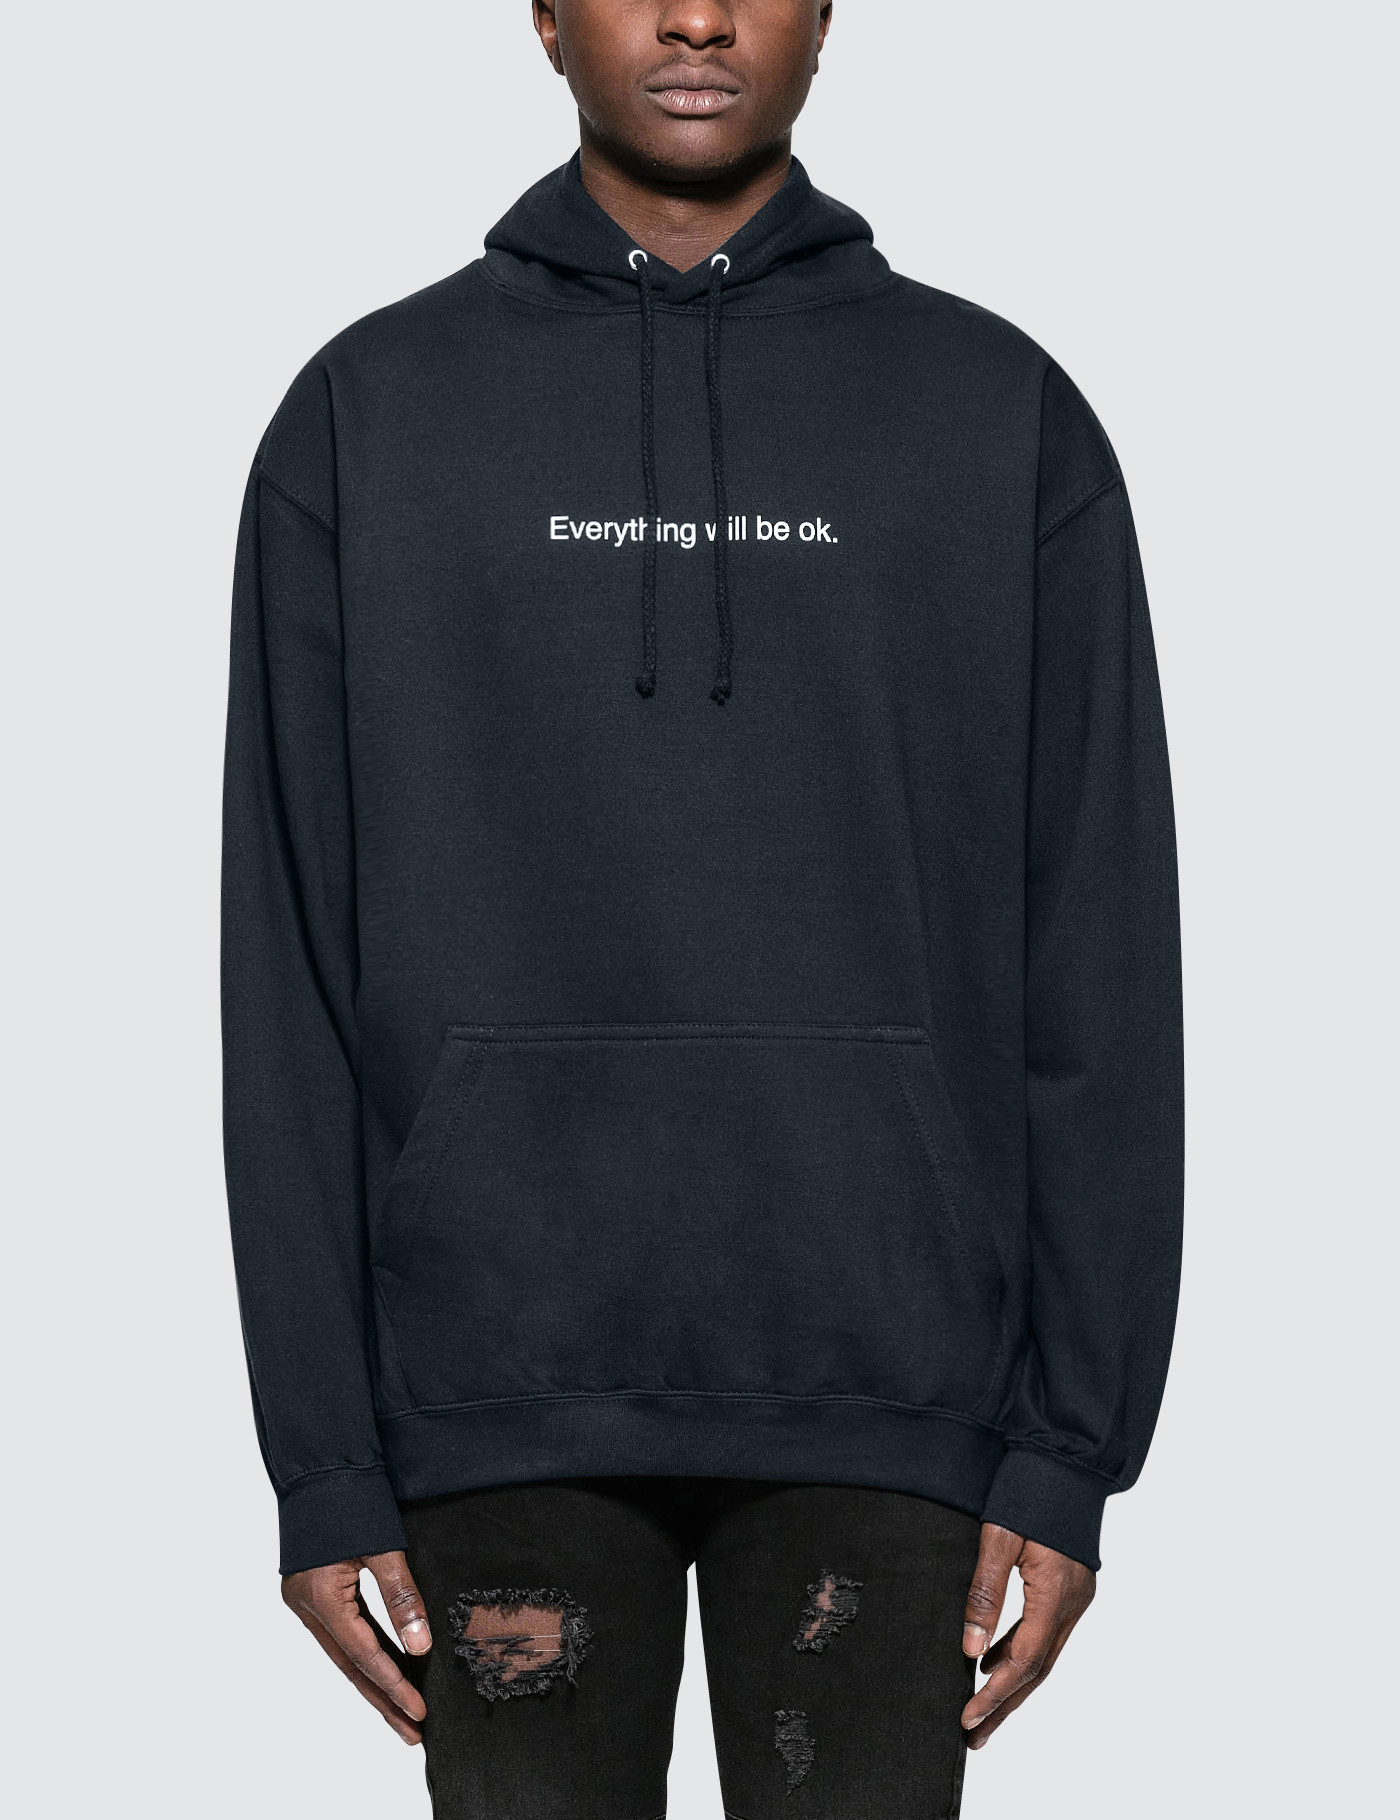 53df1ff7789 Buy Original F.A.M.T. Everything Will Be OK Hoodie at Indonesia ...